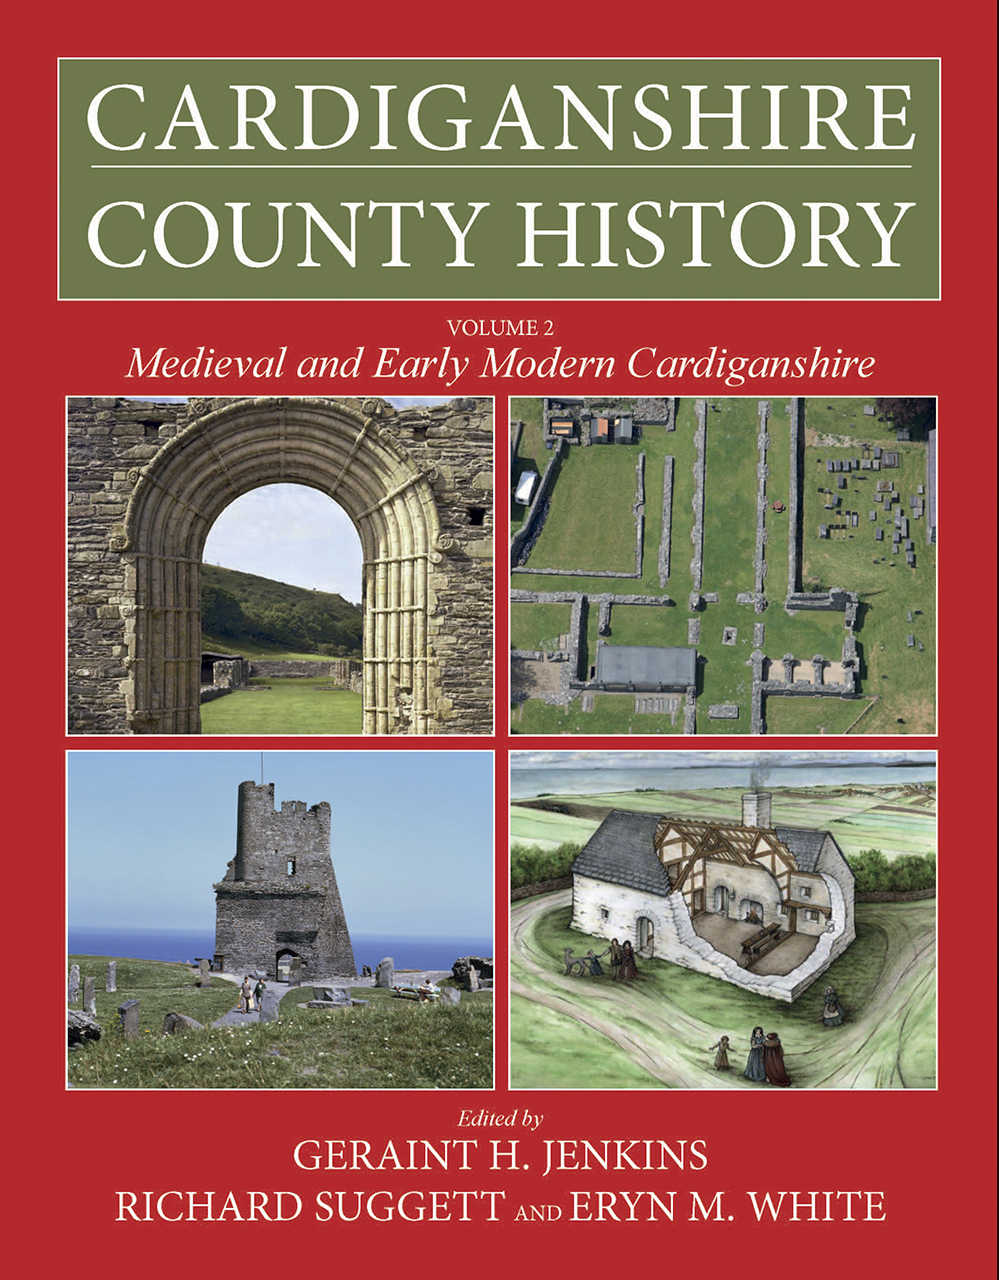 Cardiganshire County History: Volume 2: Medieval and Early Modern Cardiganshire